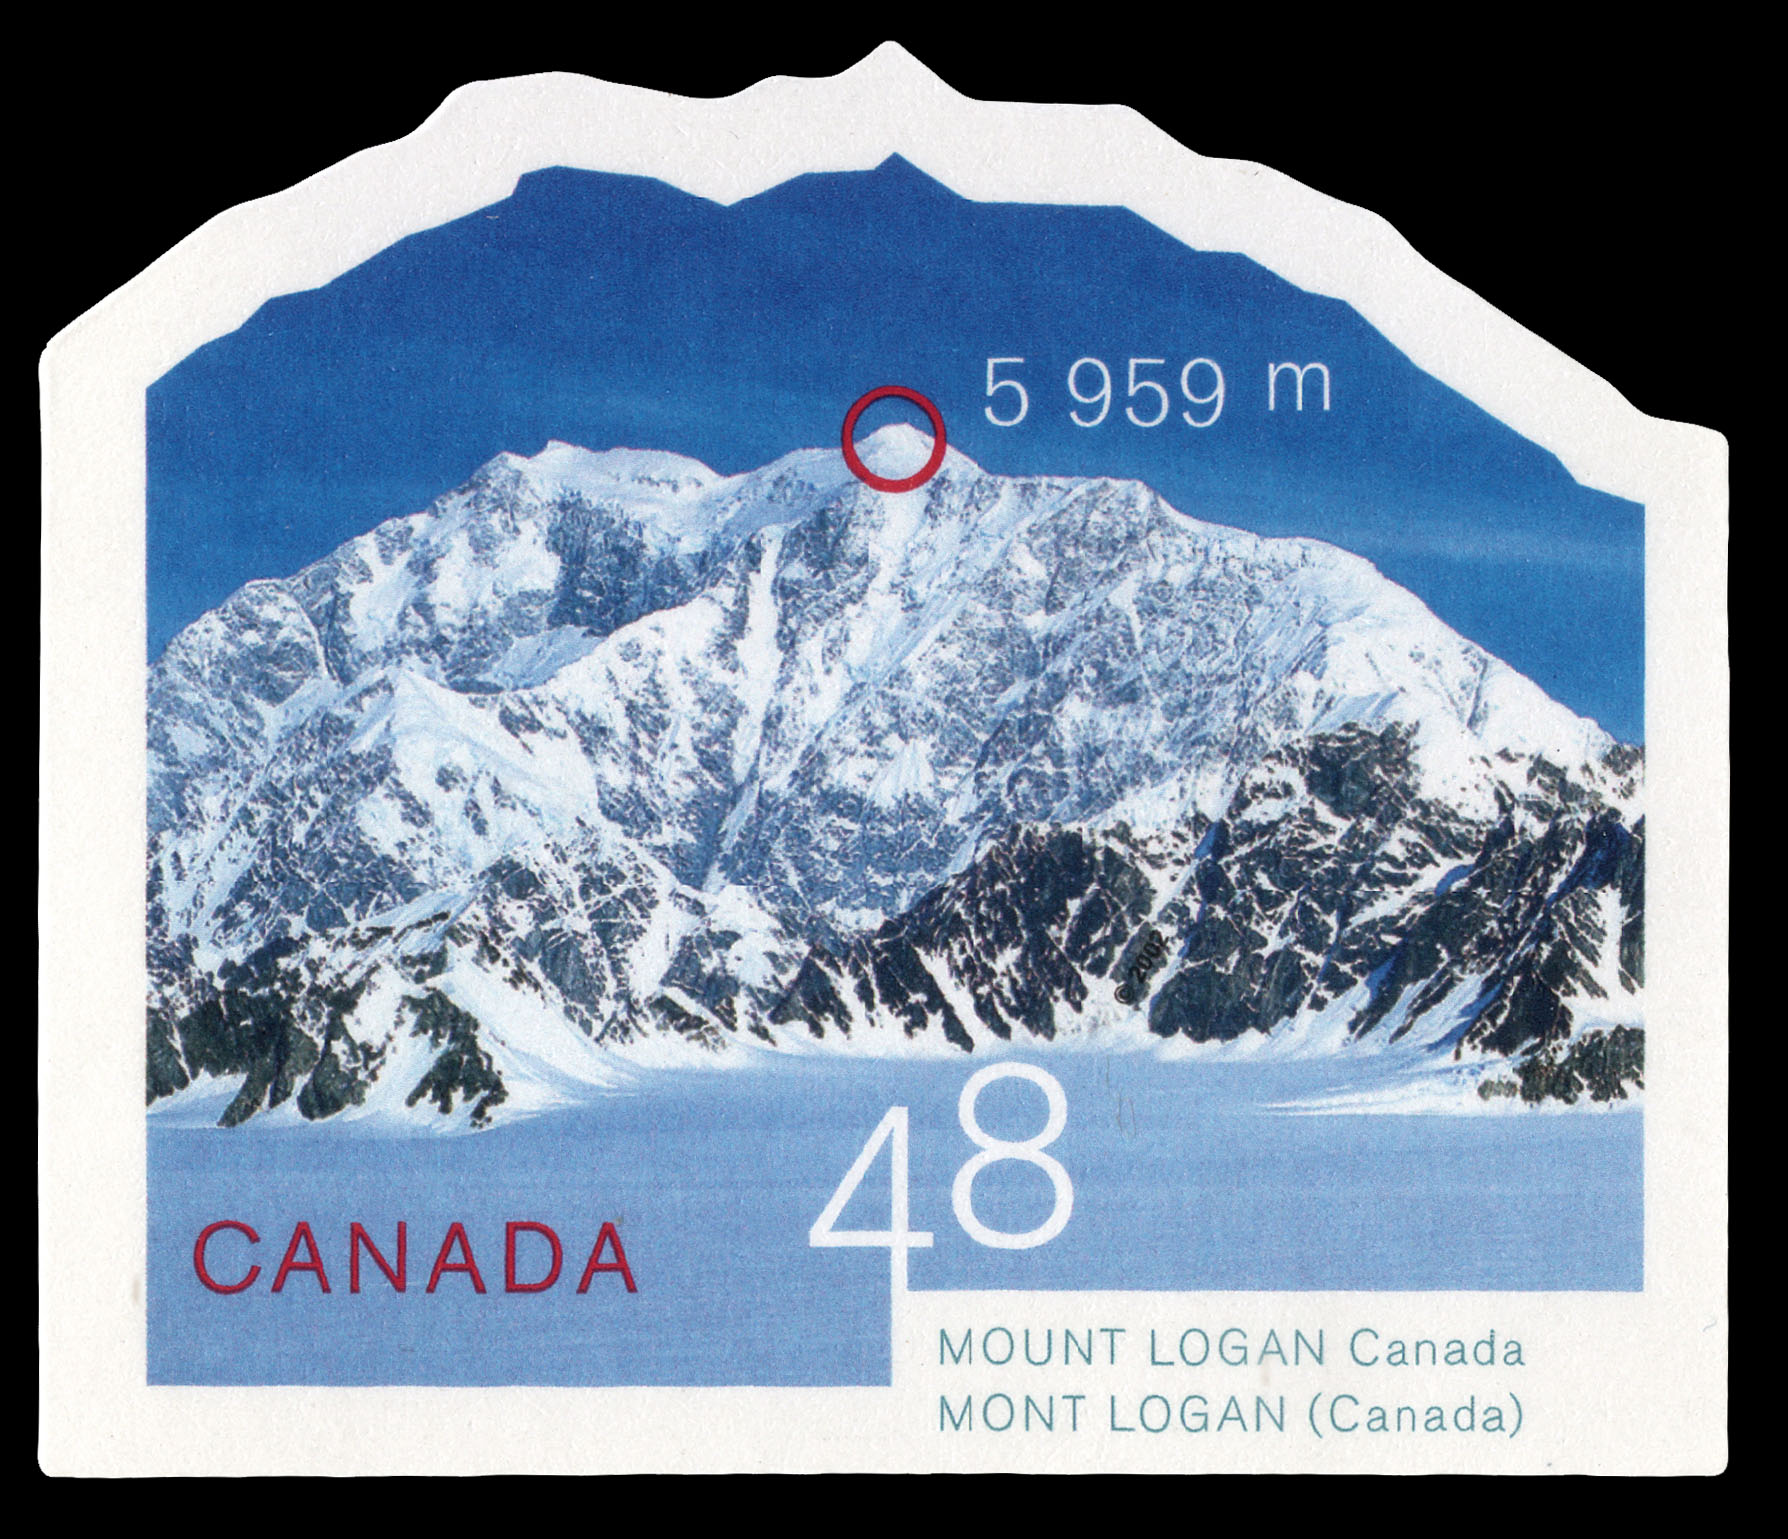 Mount Logan, Canada, 5,959 m Canada Postage Stamp | Mountains